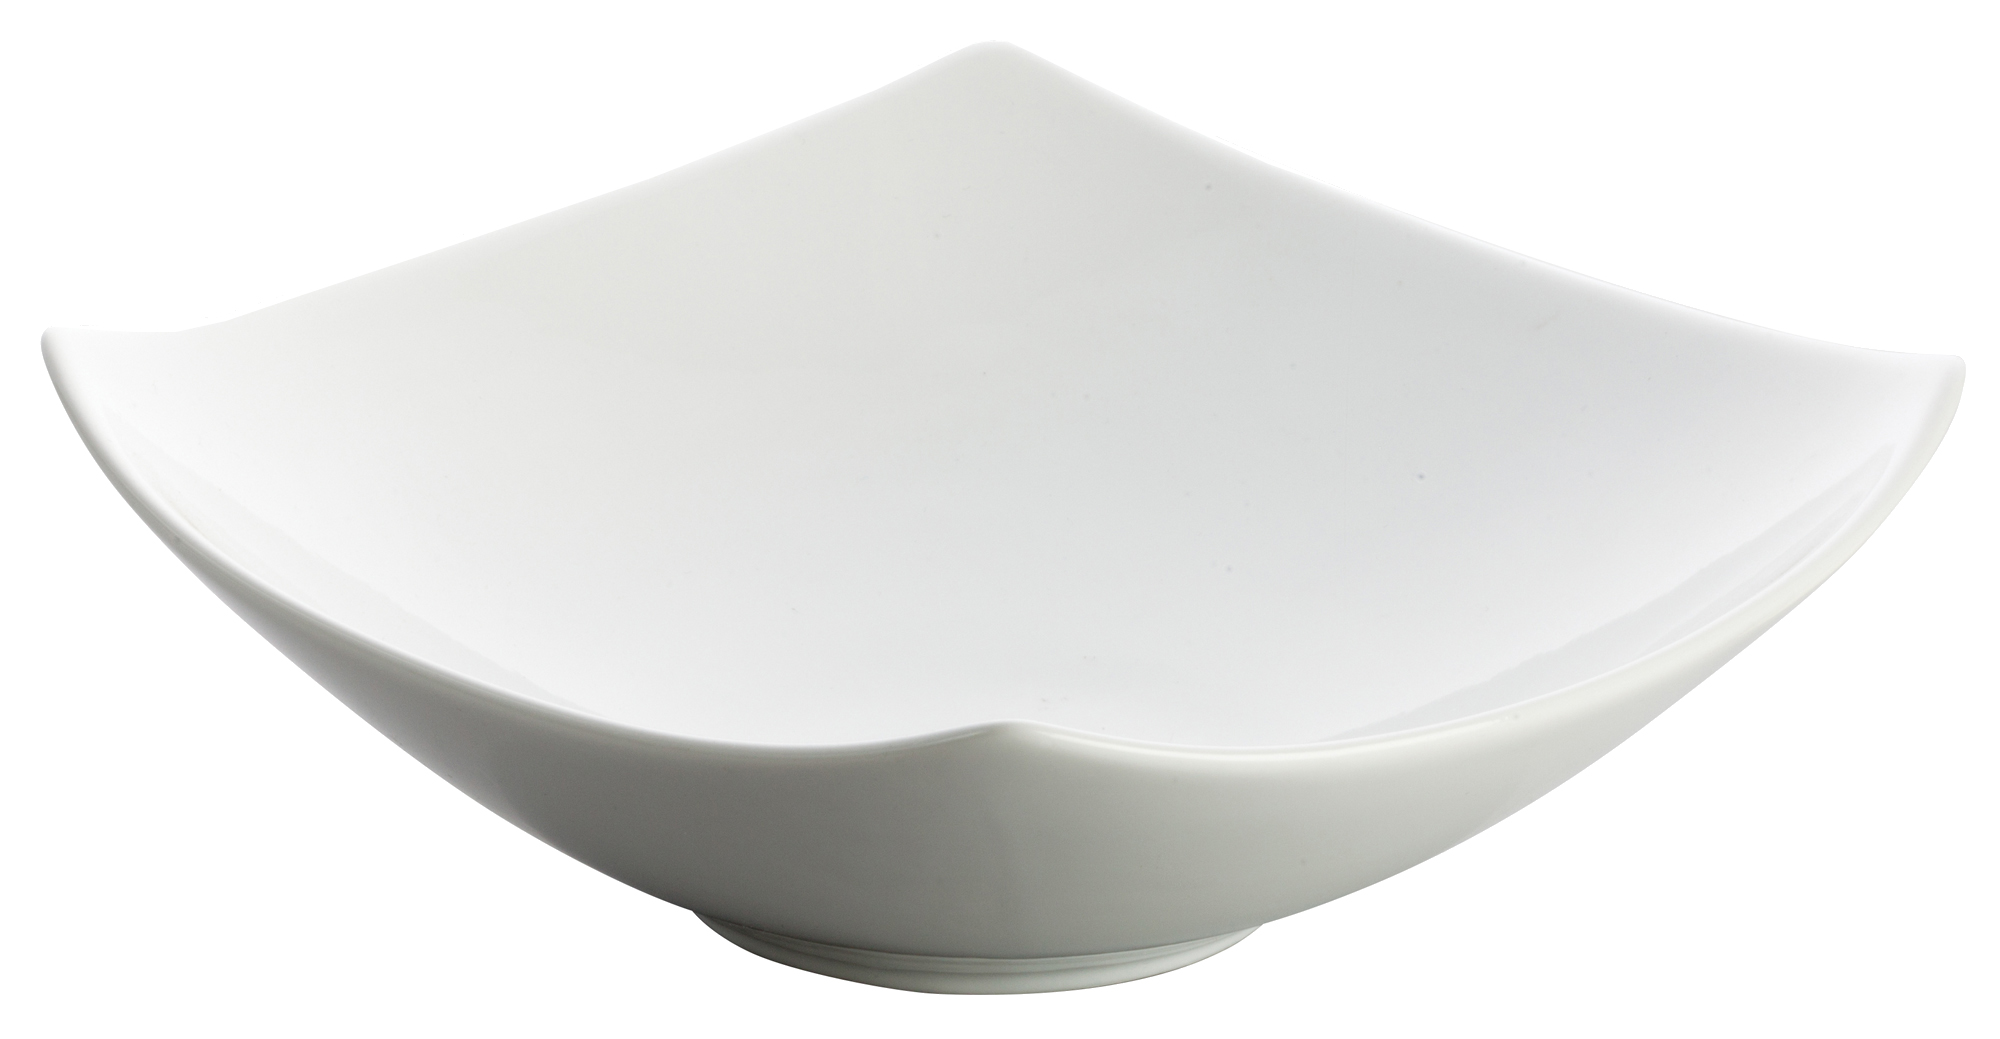 Winco WDP013-101 china, bowl (unknown capacity)